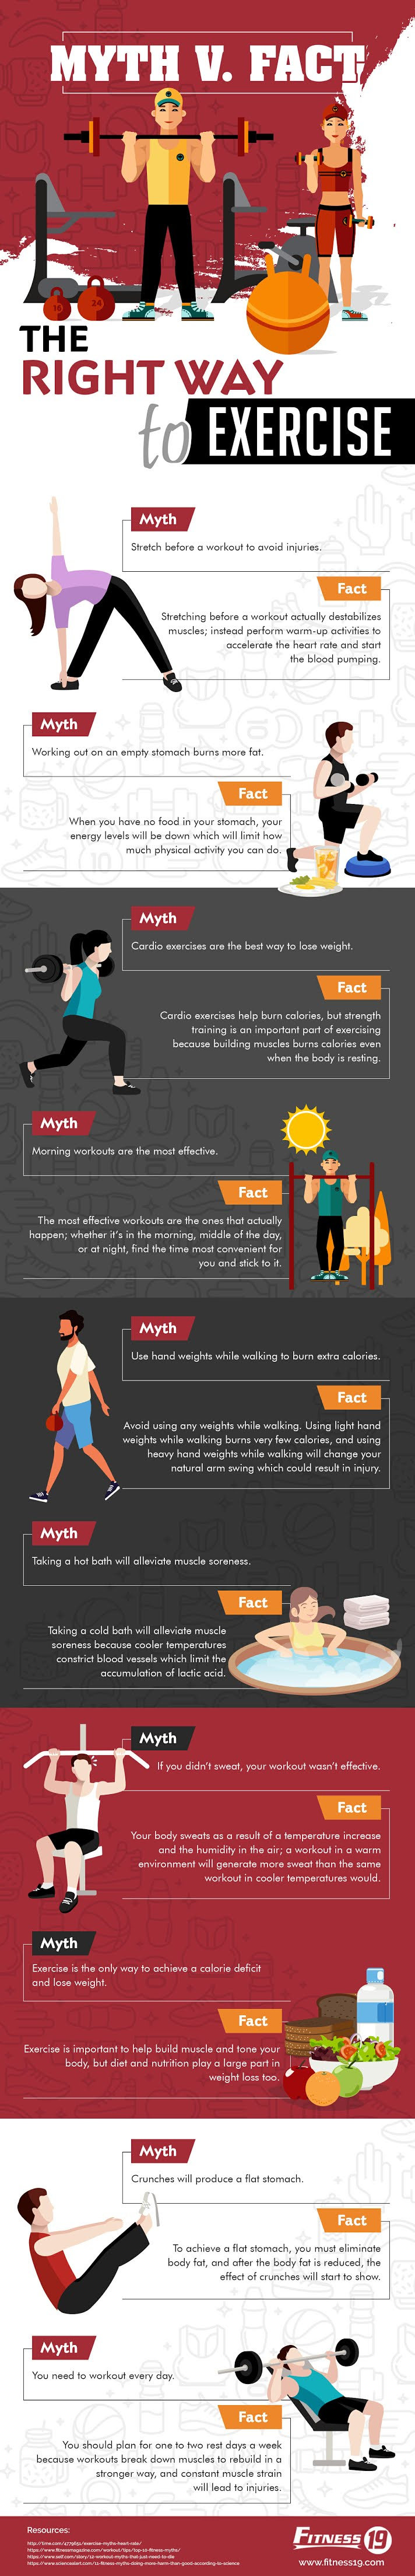 Myth V. Fact: The Right Way To Exercise #infographic